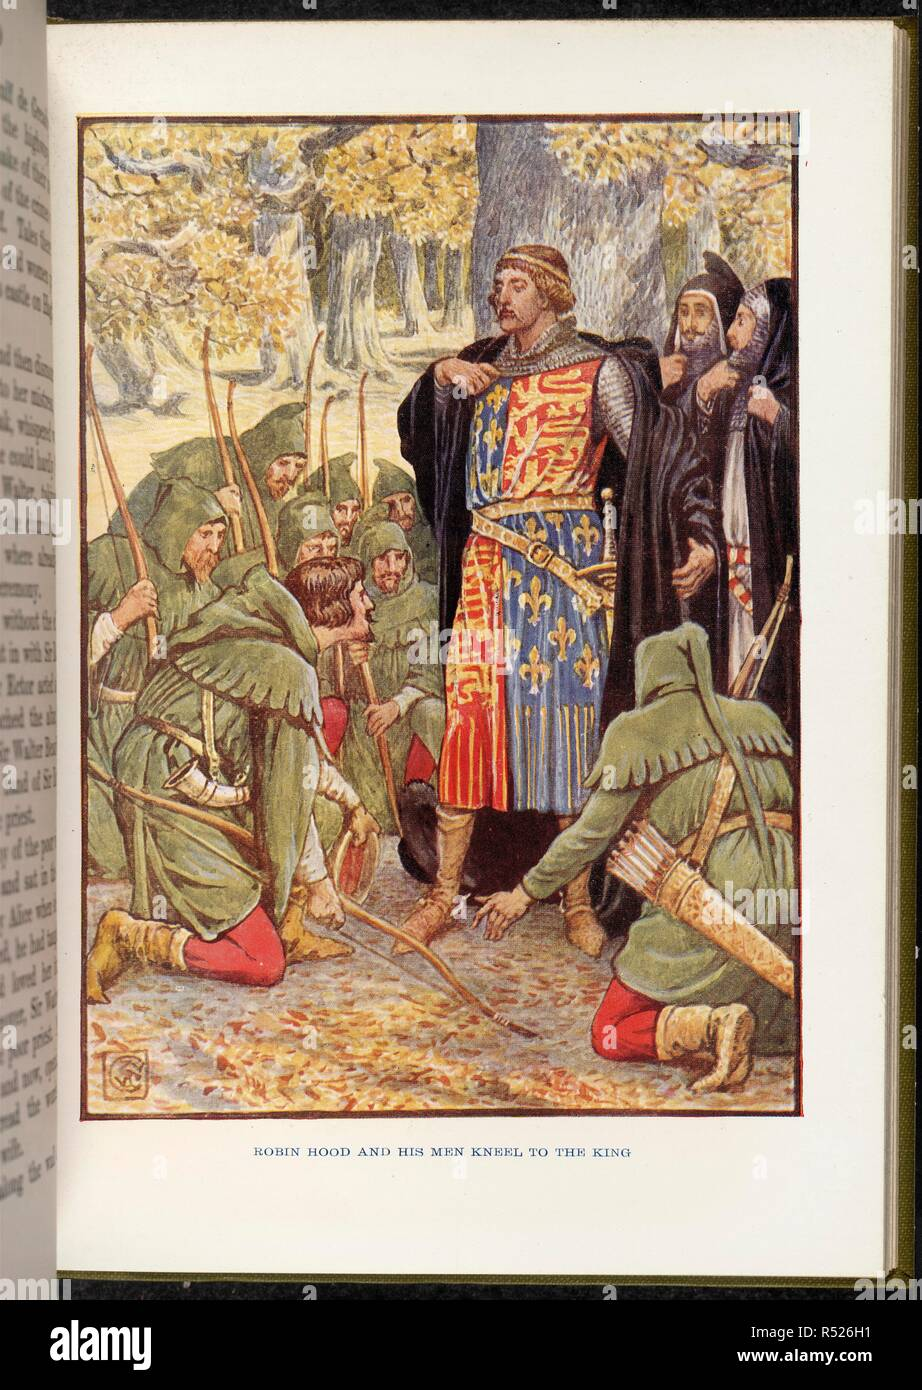 Robin Hood before Richard I. Robin Hood and his Merry Men ... With 8 illustrati. 1915. Robin Hood and his men kneel to the King (Richard I, the Lionheart).  Image taken from Robin Hood and his Merry Men With 8 illustrations in colour by Walter Crane.  Originally published/produced in 1915. . Source: 12827.h.1/3, opposite 96. Language: English. - Stock Image